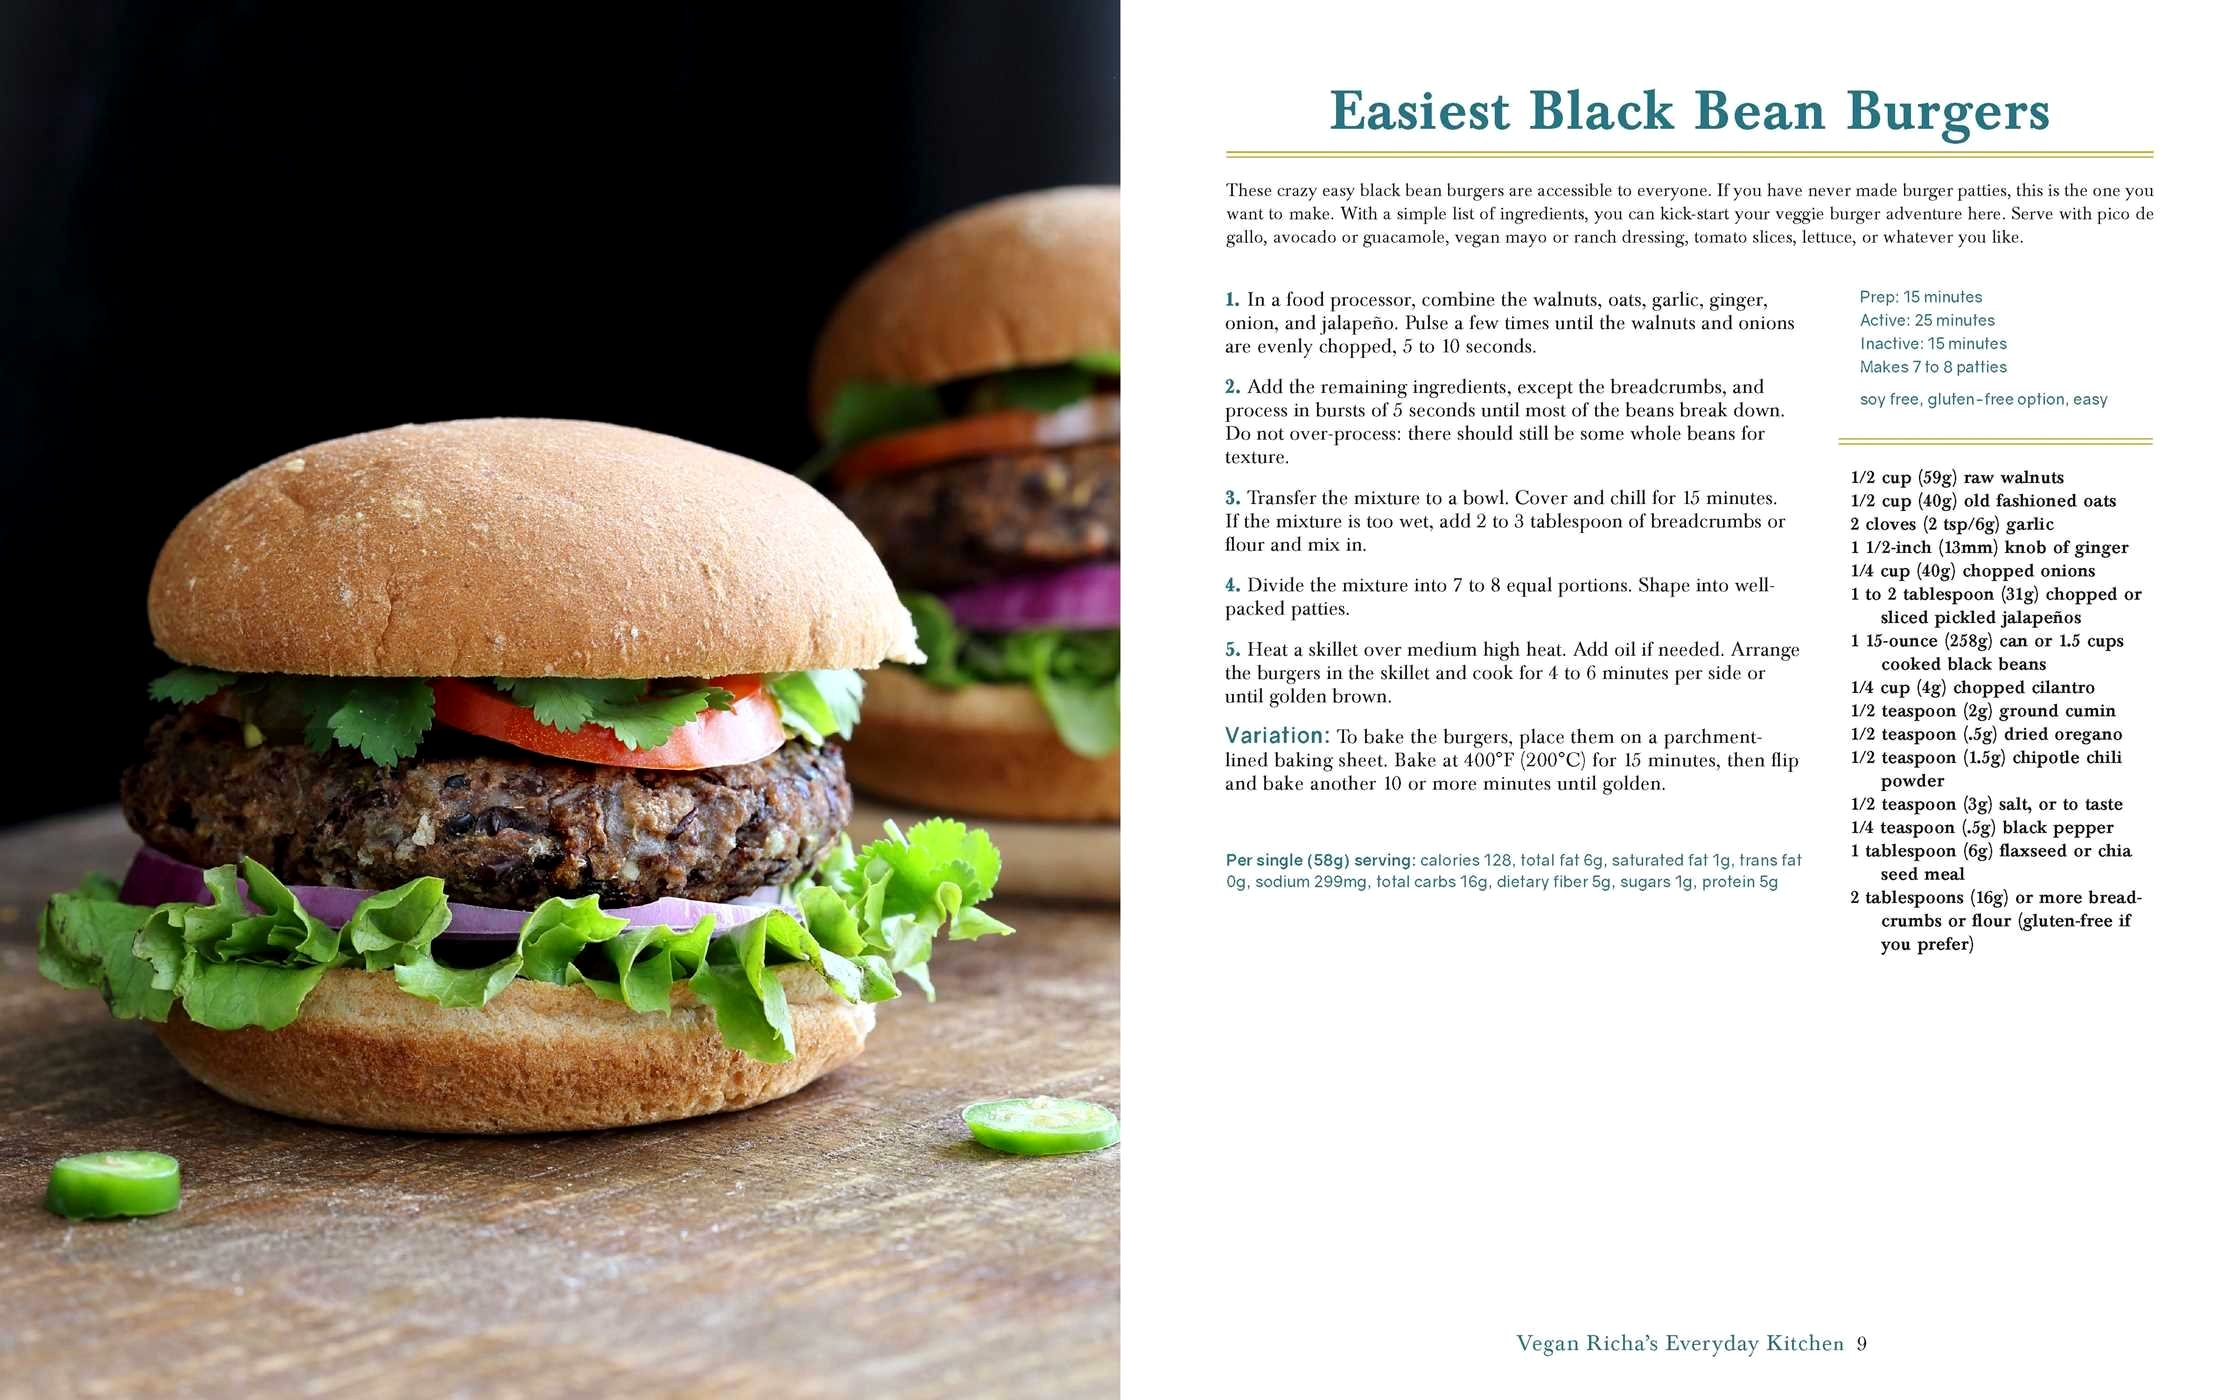 Black Bean Burgers from Vegan Richa's Everyday Kitchen, available to Preorder everywhere where books are sold.